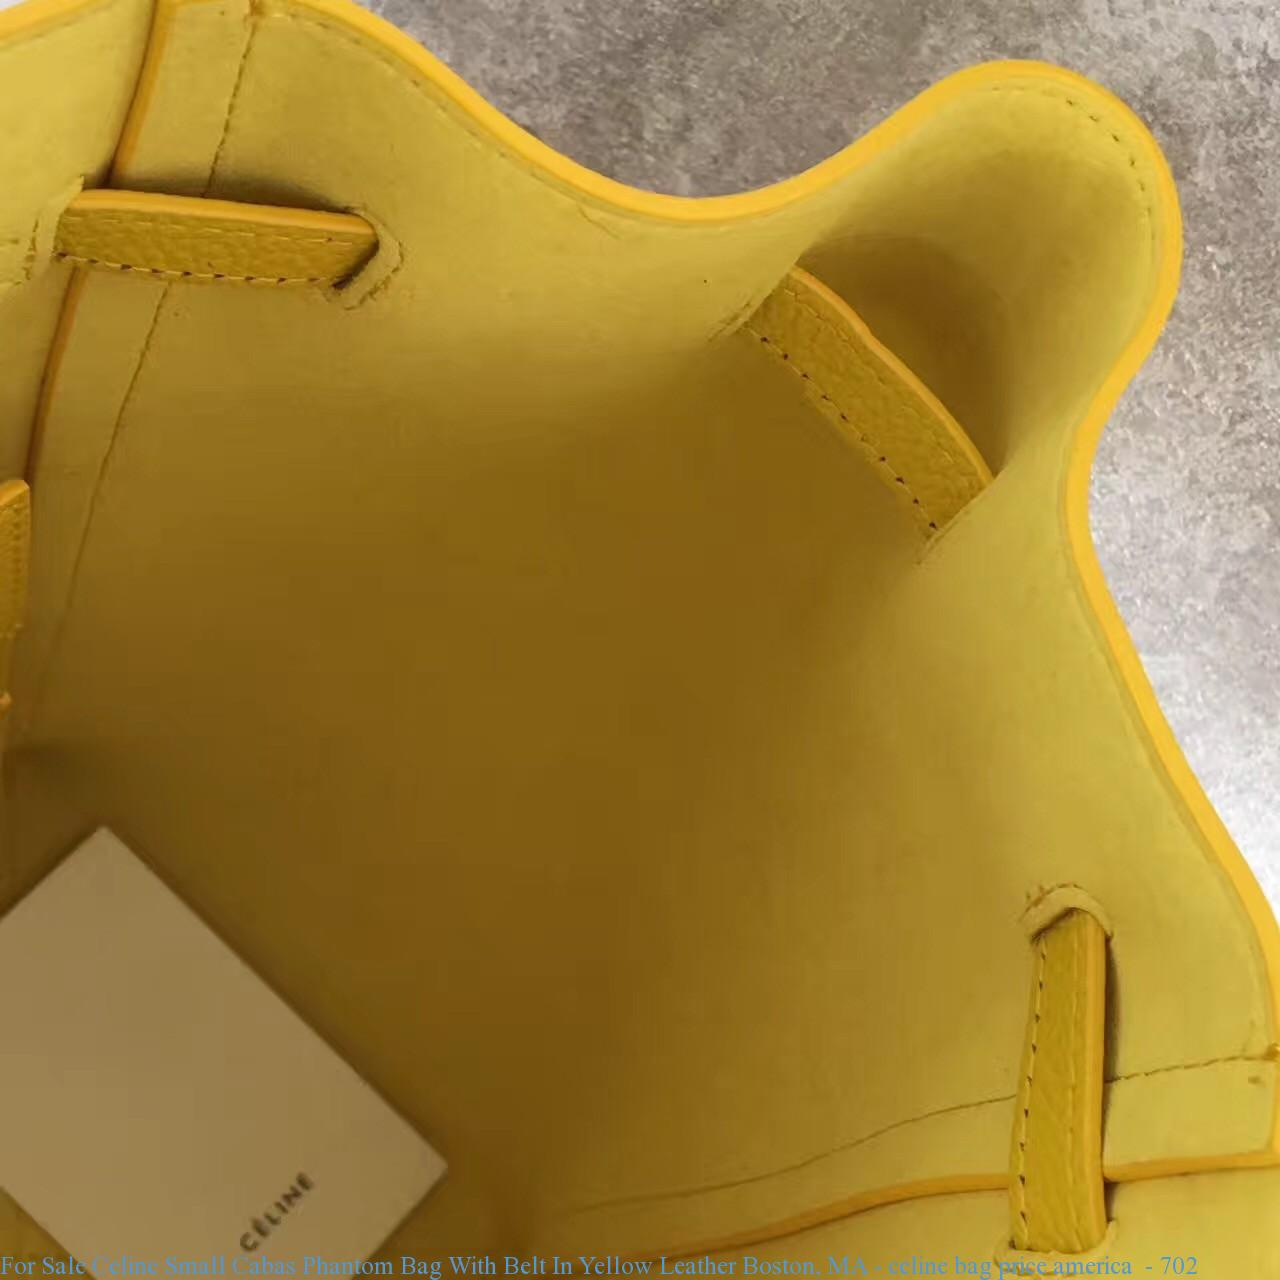 4161e464c For Sale Celine Small Cabas Phantom Bag With Belt In Yellow Leather ...